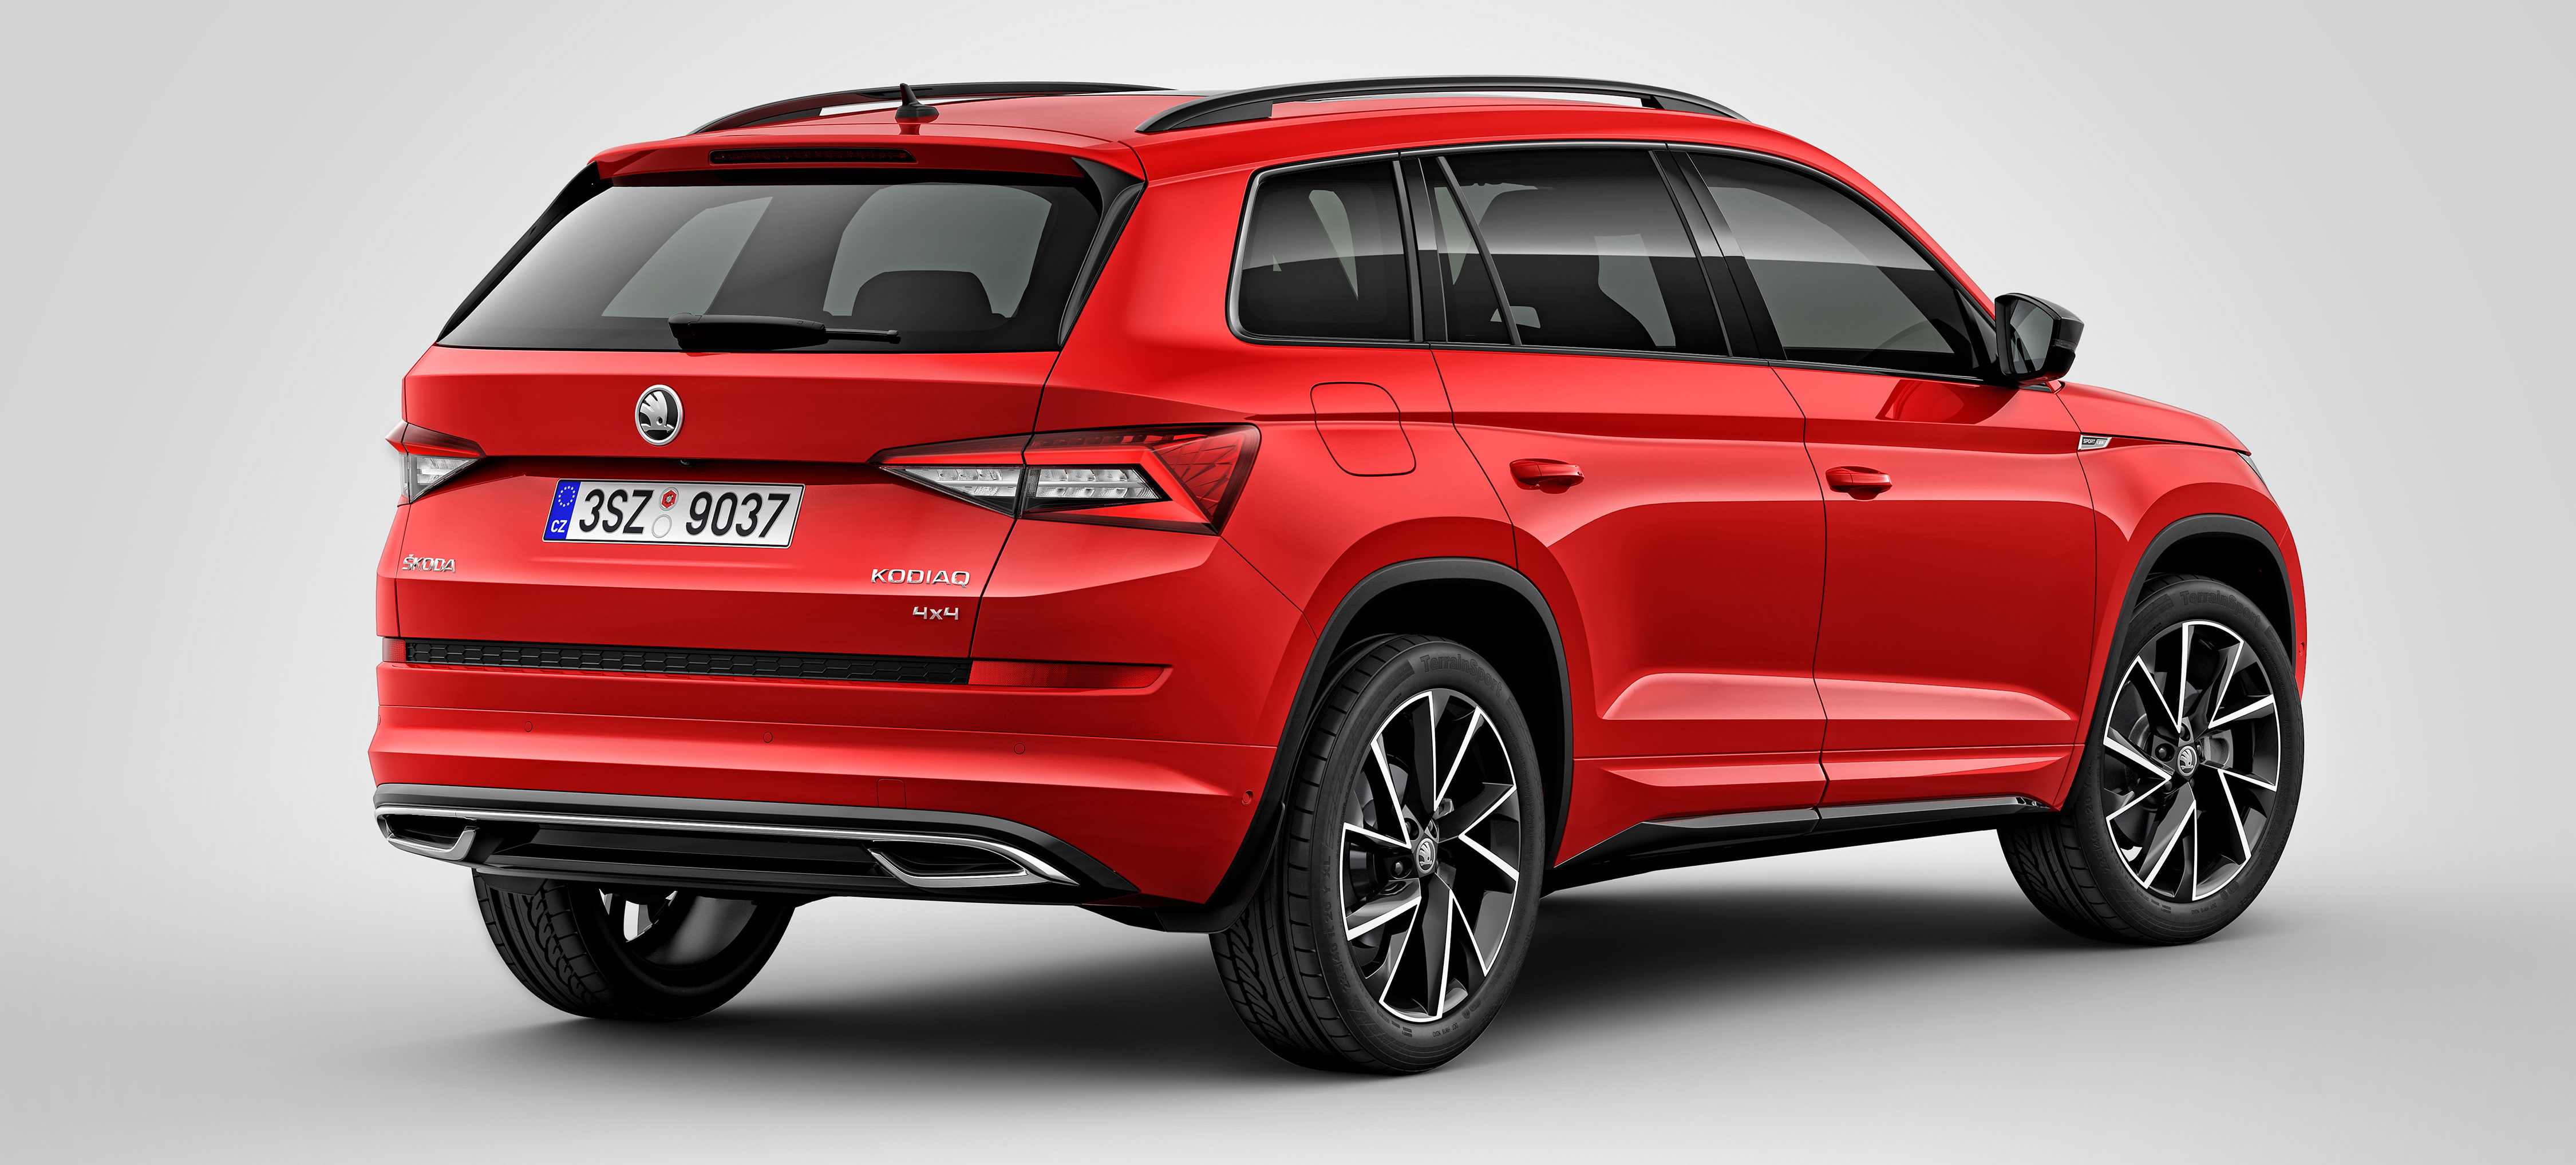 skoda kodiaq sportline preise motoren verkaufsstart. Black Bedroom Furniture Sets. Home Design Ideas